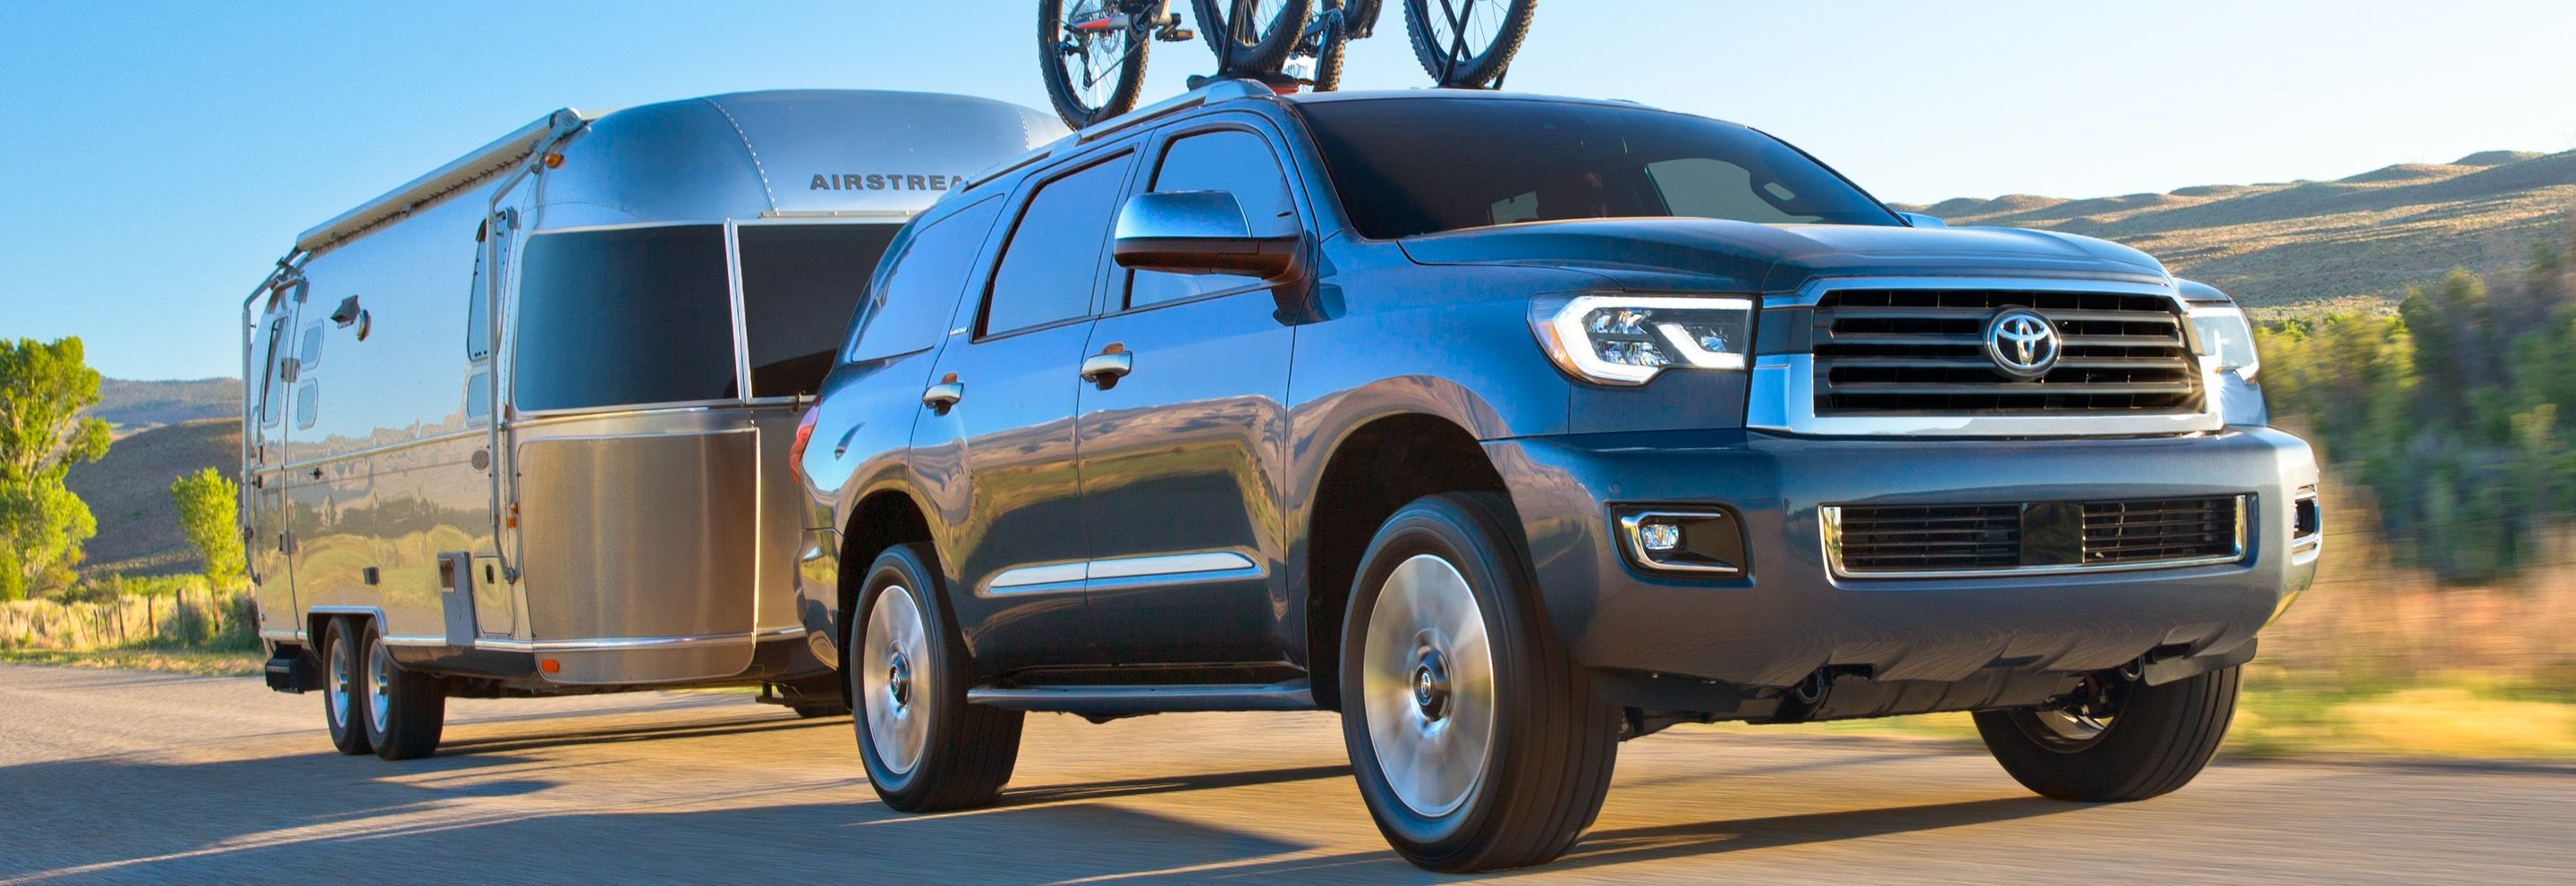 2019 Toyota Sequoia For Sale Near Elmhurst Il Lombard Fuel Filter Location